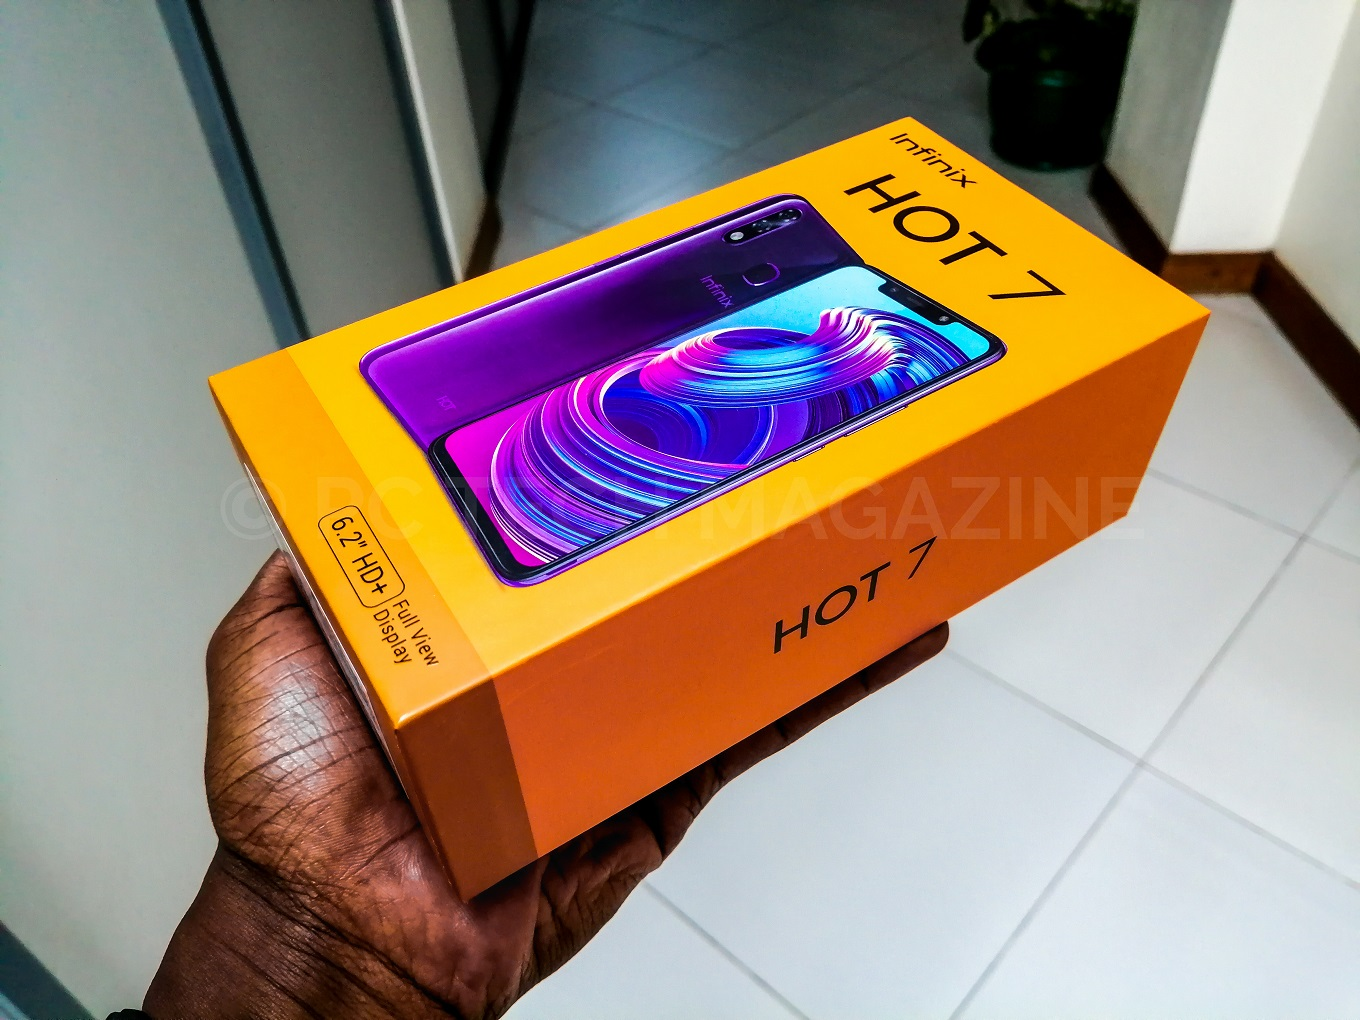 The Infinix Hot 7 comes in a Cosmic Purple color option as well | Photo by : PC TECH MAGAZINE/Olupot Nathan Ernest.